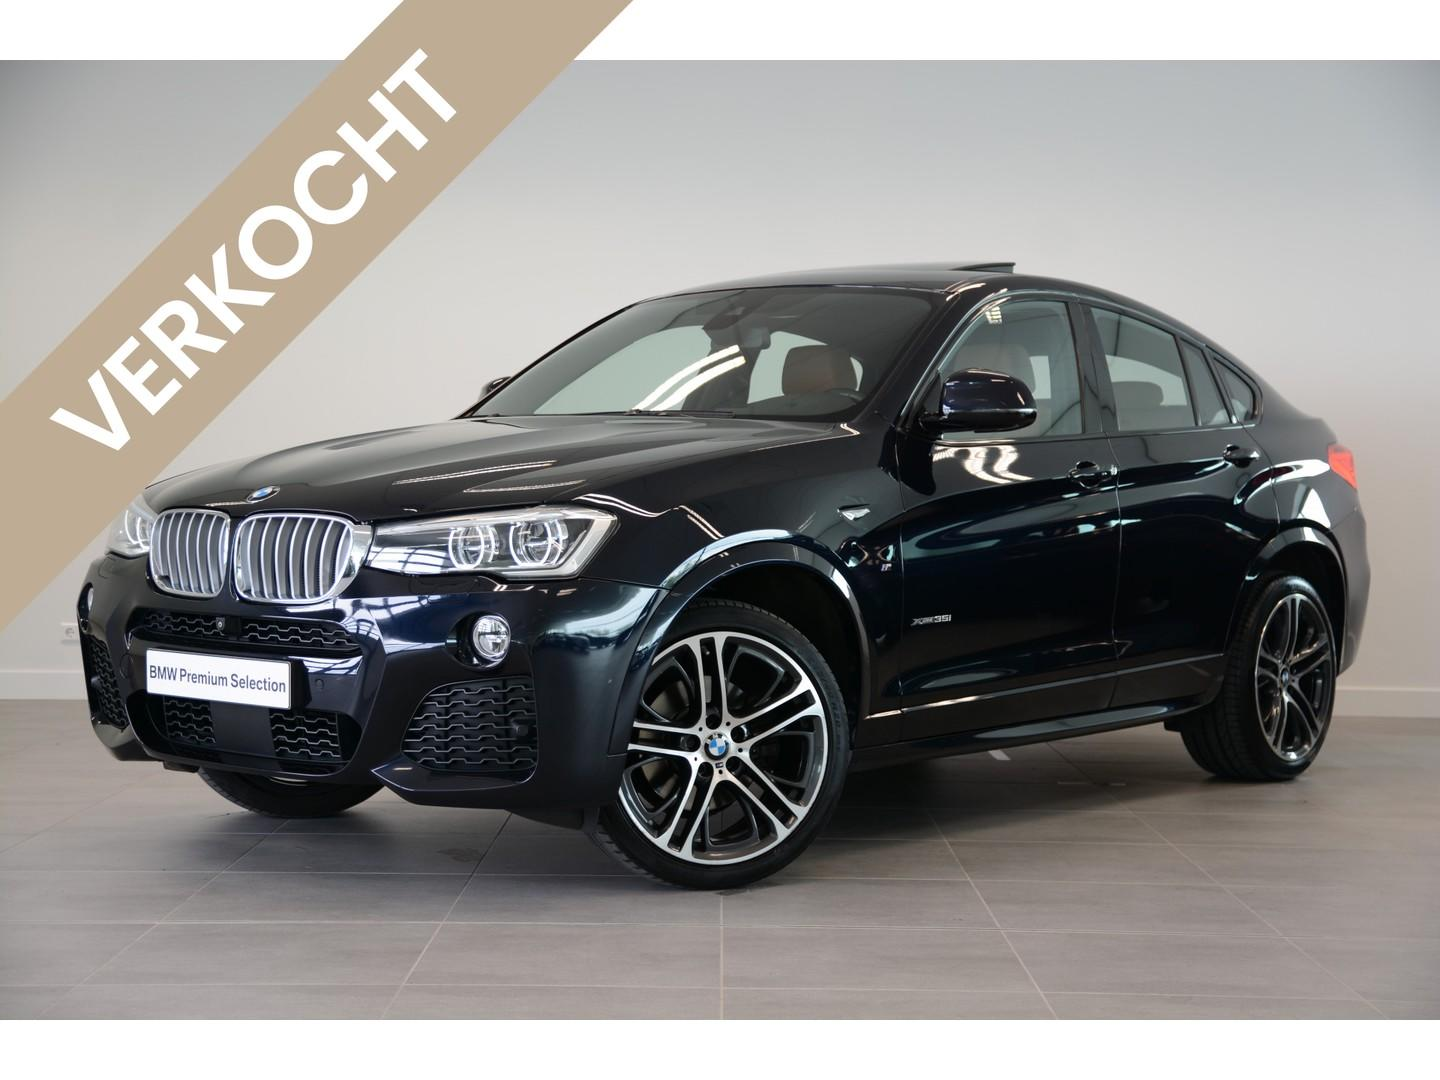 Bmw X4 Xdrive35i high executive m sportpakket aut.